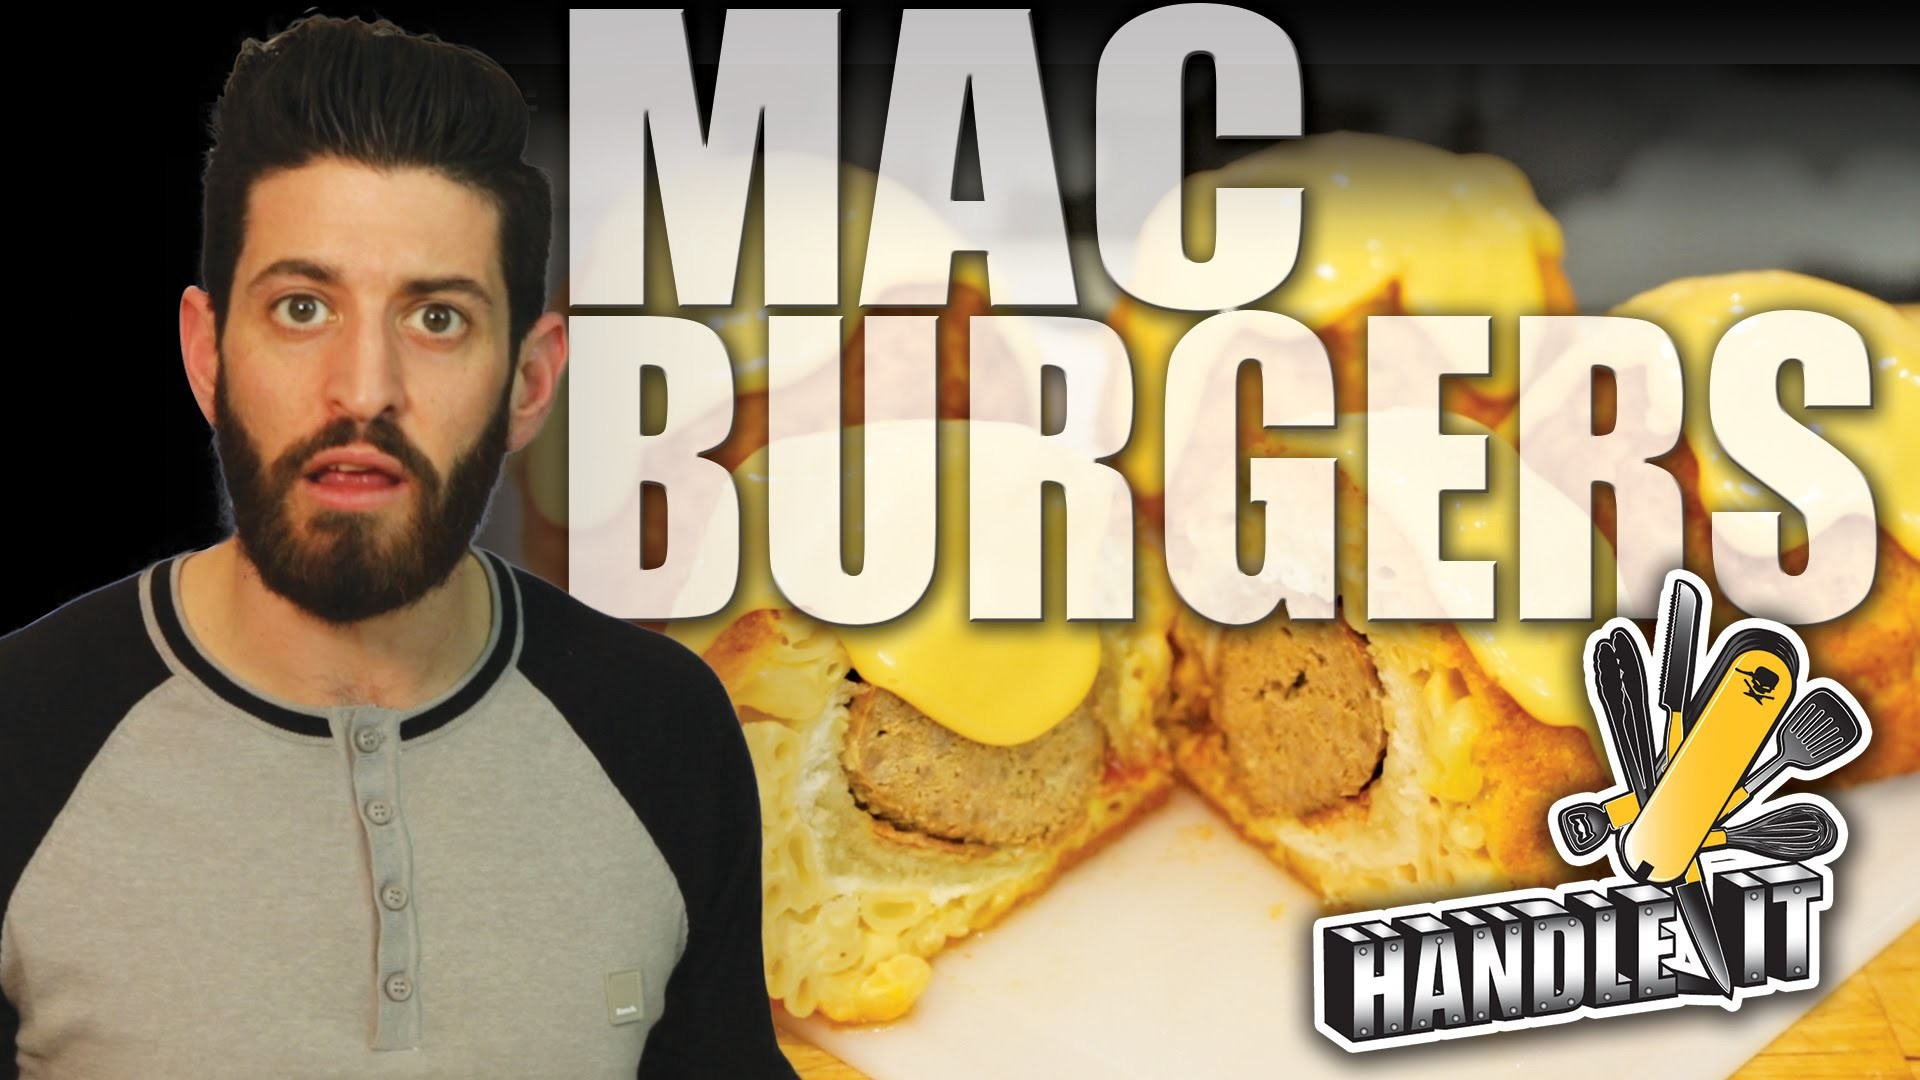 Mac Burgers - Handle It